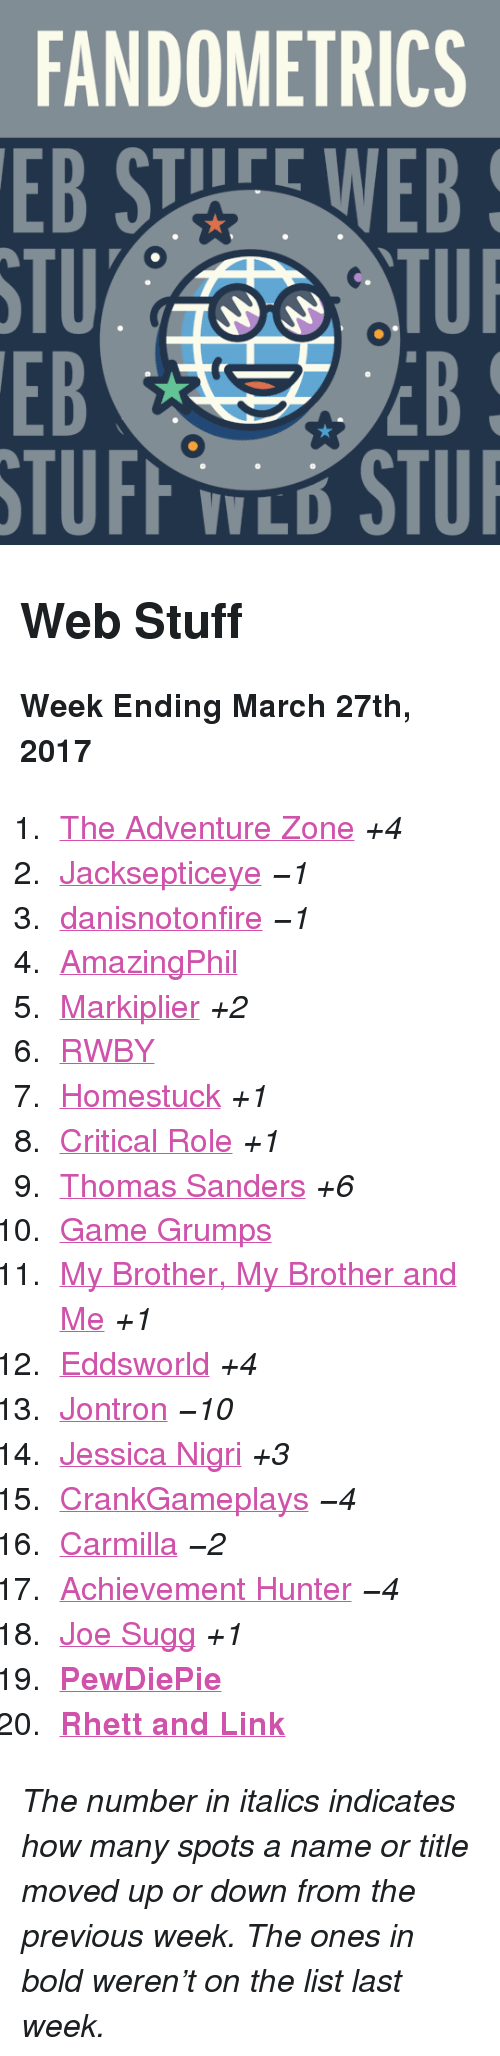 """jontron: FANDOMETRICS  EB STUFE WEB  STU  EB  TUI  EB  V L <h2>Web Stuff</h2><p><b>Week Ending March 27th, 2017</b></p><ol><li><a href=""""http://www.tumblr.com/search/the%20adventure%20zone"""">The Adventure Zone</a><i>+4</i></li>  <li><a href=""""http://www.tumblr.com/search/jacksepticeye"""">Jacksepticeye</a><i><i><i><i>−1</i></i></i></i></li>  <li><a href=""""http://www.tumblr.com/search/danisnotonfire"""">danisnotonfire</a><i><i><i><i>−1</i></i></i></i></li>  <li><a href=""""http://www.tumblr.com/search/amazingphil"""">AmazingPhil</a></li>  <li><a href=""""http://www.tumblr.com/search/markiplier"""">Markiplier</a><i>+2</i></li>  <li><a href=""""http://www.tumblr.com/search/rwby"""">RWBY</a></li>  <li><a href=""""http://www.tumblr.com/search/homestuck"""">Homestuck</a><i>+1</i></li>  <li><a href=""""http://www.tumblr.com/search/critical%20role"""">Critical Role</a><i>+1</i></li>  <li><a href=""""http://www.tumblr.com/search/thomas%20sanders"""">Thomas Sanders</a><i>+6</i></li>  <li><a href=""""http://www.tumblr.com/search/game%20grumps"""">Game Grumps</a></li>  <li><a href=""""http://www.tumblr.com/search/mbmbam"""">My Brother, My Brother and Me</a><i>+1</i></li>  <li><a href=""""http://www.tumblr.com/search/eddsworld"""">Eddsworld</a><i>+4</i></li>  <li><a href=""""http://www.tumblr.com/search/jontron"""">Jontron</a><i><i><i><i>−10</i></i></i></i></li>  <li><a href=""""http://www.tumblr.com/search/jessica%20nigri"""">Jessica Nigri</a><i>+3</i></li>  <li><a href=""""http://www.tumblr.com/search/crankgameplays"""">CrankGameplays</a><i><i><i><i>−4</i></i></i></i></li>  <li><a href=""""http://www.tumblr.com/search/carmilla"""">Carmilla</a><i><i><i><i>−2</i></i></i></i></li>  <li><a href=""""http://www.tumblr.com/search/achievement%20hunter"""">Achievement Hunter</a><i><i><i><i>−4</i></i></i></i></li>  <li><a href=""""http://www.tumblr.com/search/joe%20sugg"""">Joe Sugg</a><i>+1</i></li>  <li><a href=""""http://www.tumblr.com/search/pewdiepie""""><b>PewDiePie</b></a></li>  <li><a href=""""http://www.tumblr.com/search/rhett%20and%20link""""><b>Rhett and Link</b></a></li></ol><p><i>The"""